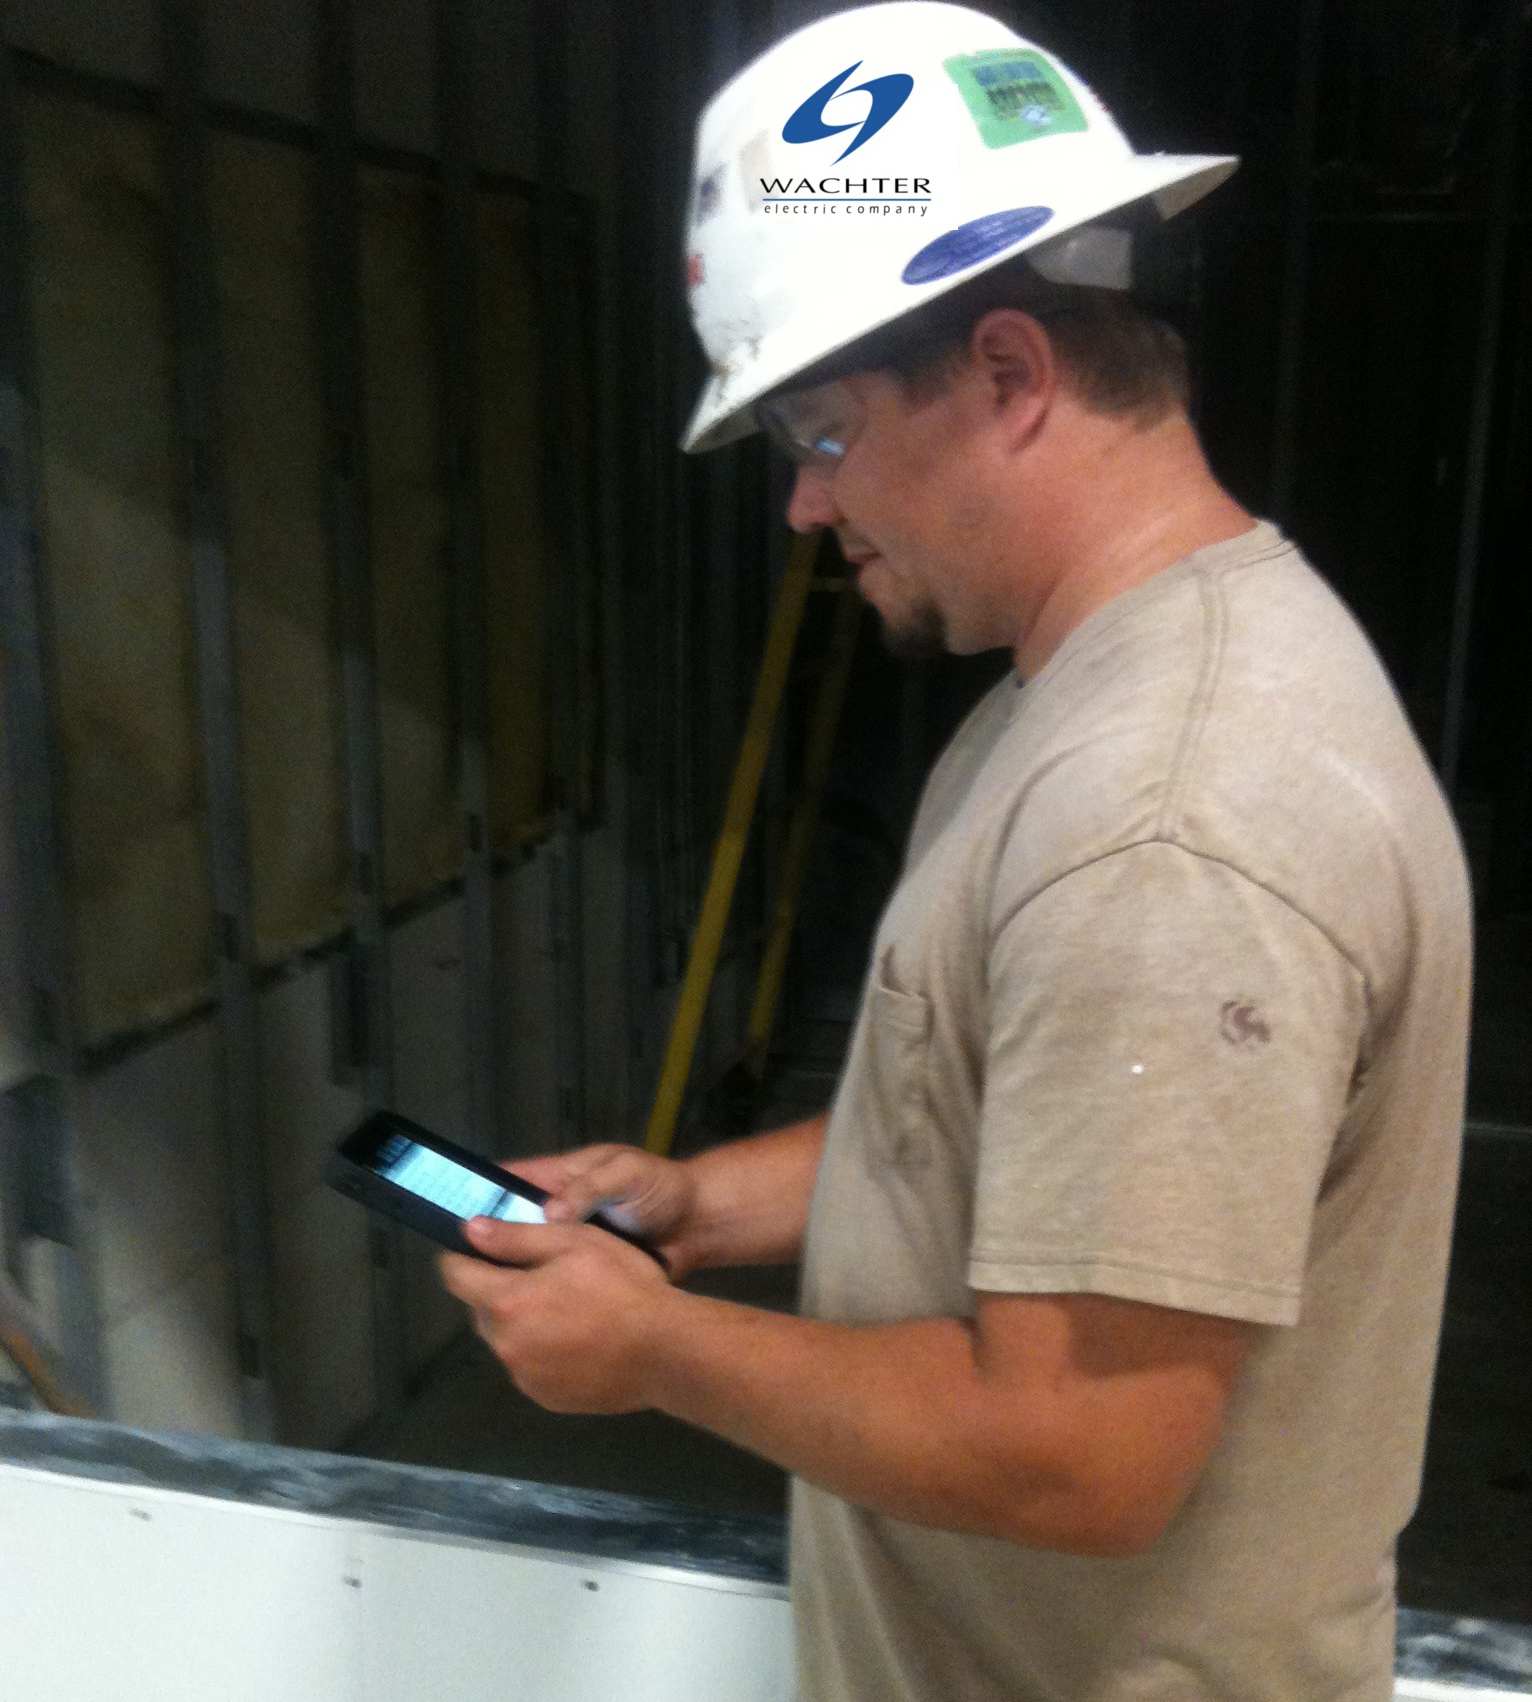 Wachter Worker using GoCanvas on Android Tablet